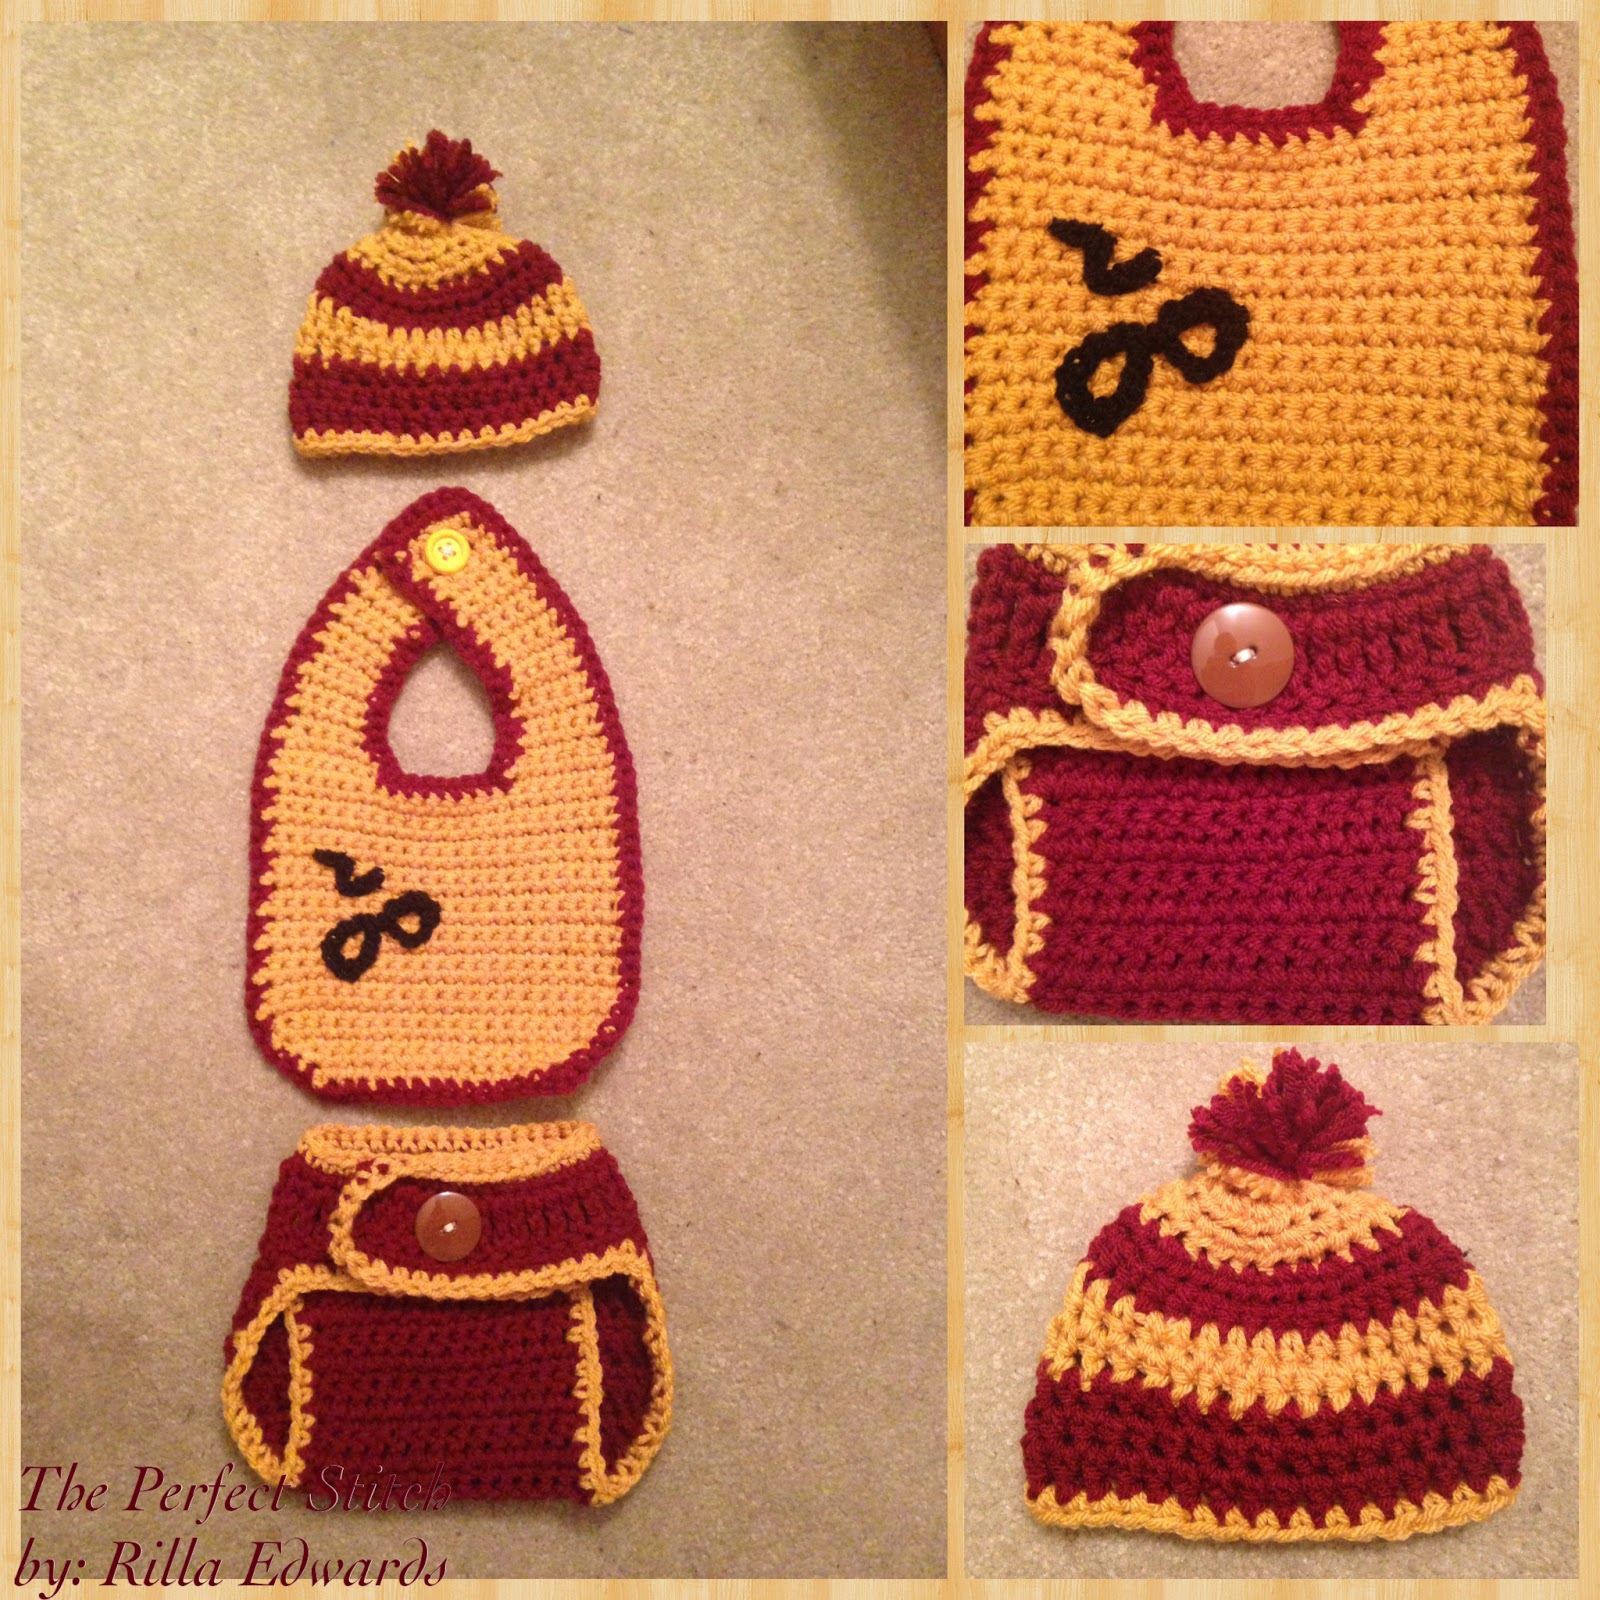 The Perfect Stitch...: Harry Potter Baby Set - Hat, Bib & Diaper Cover